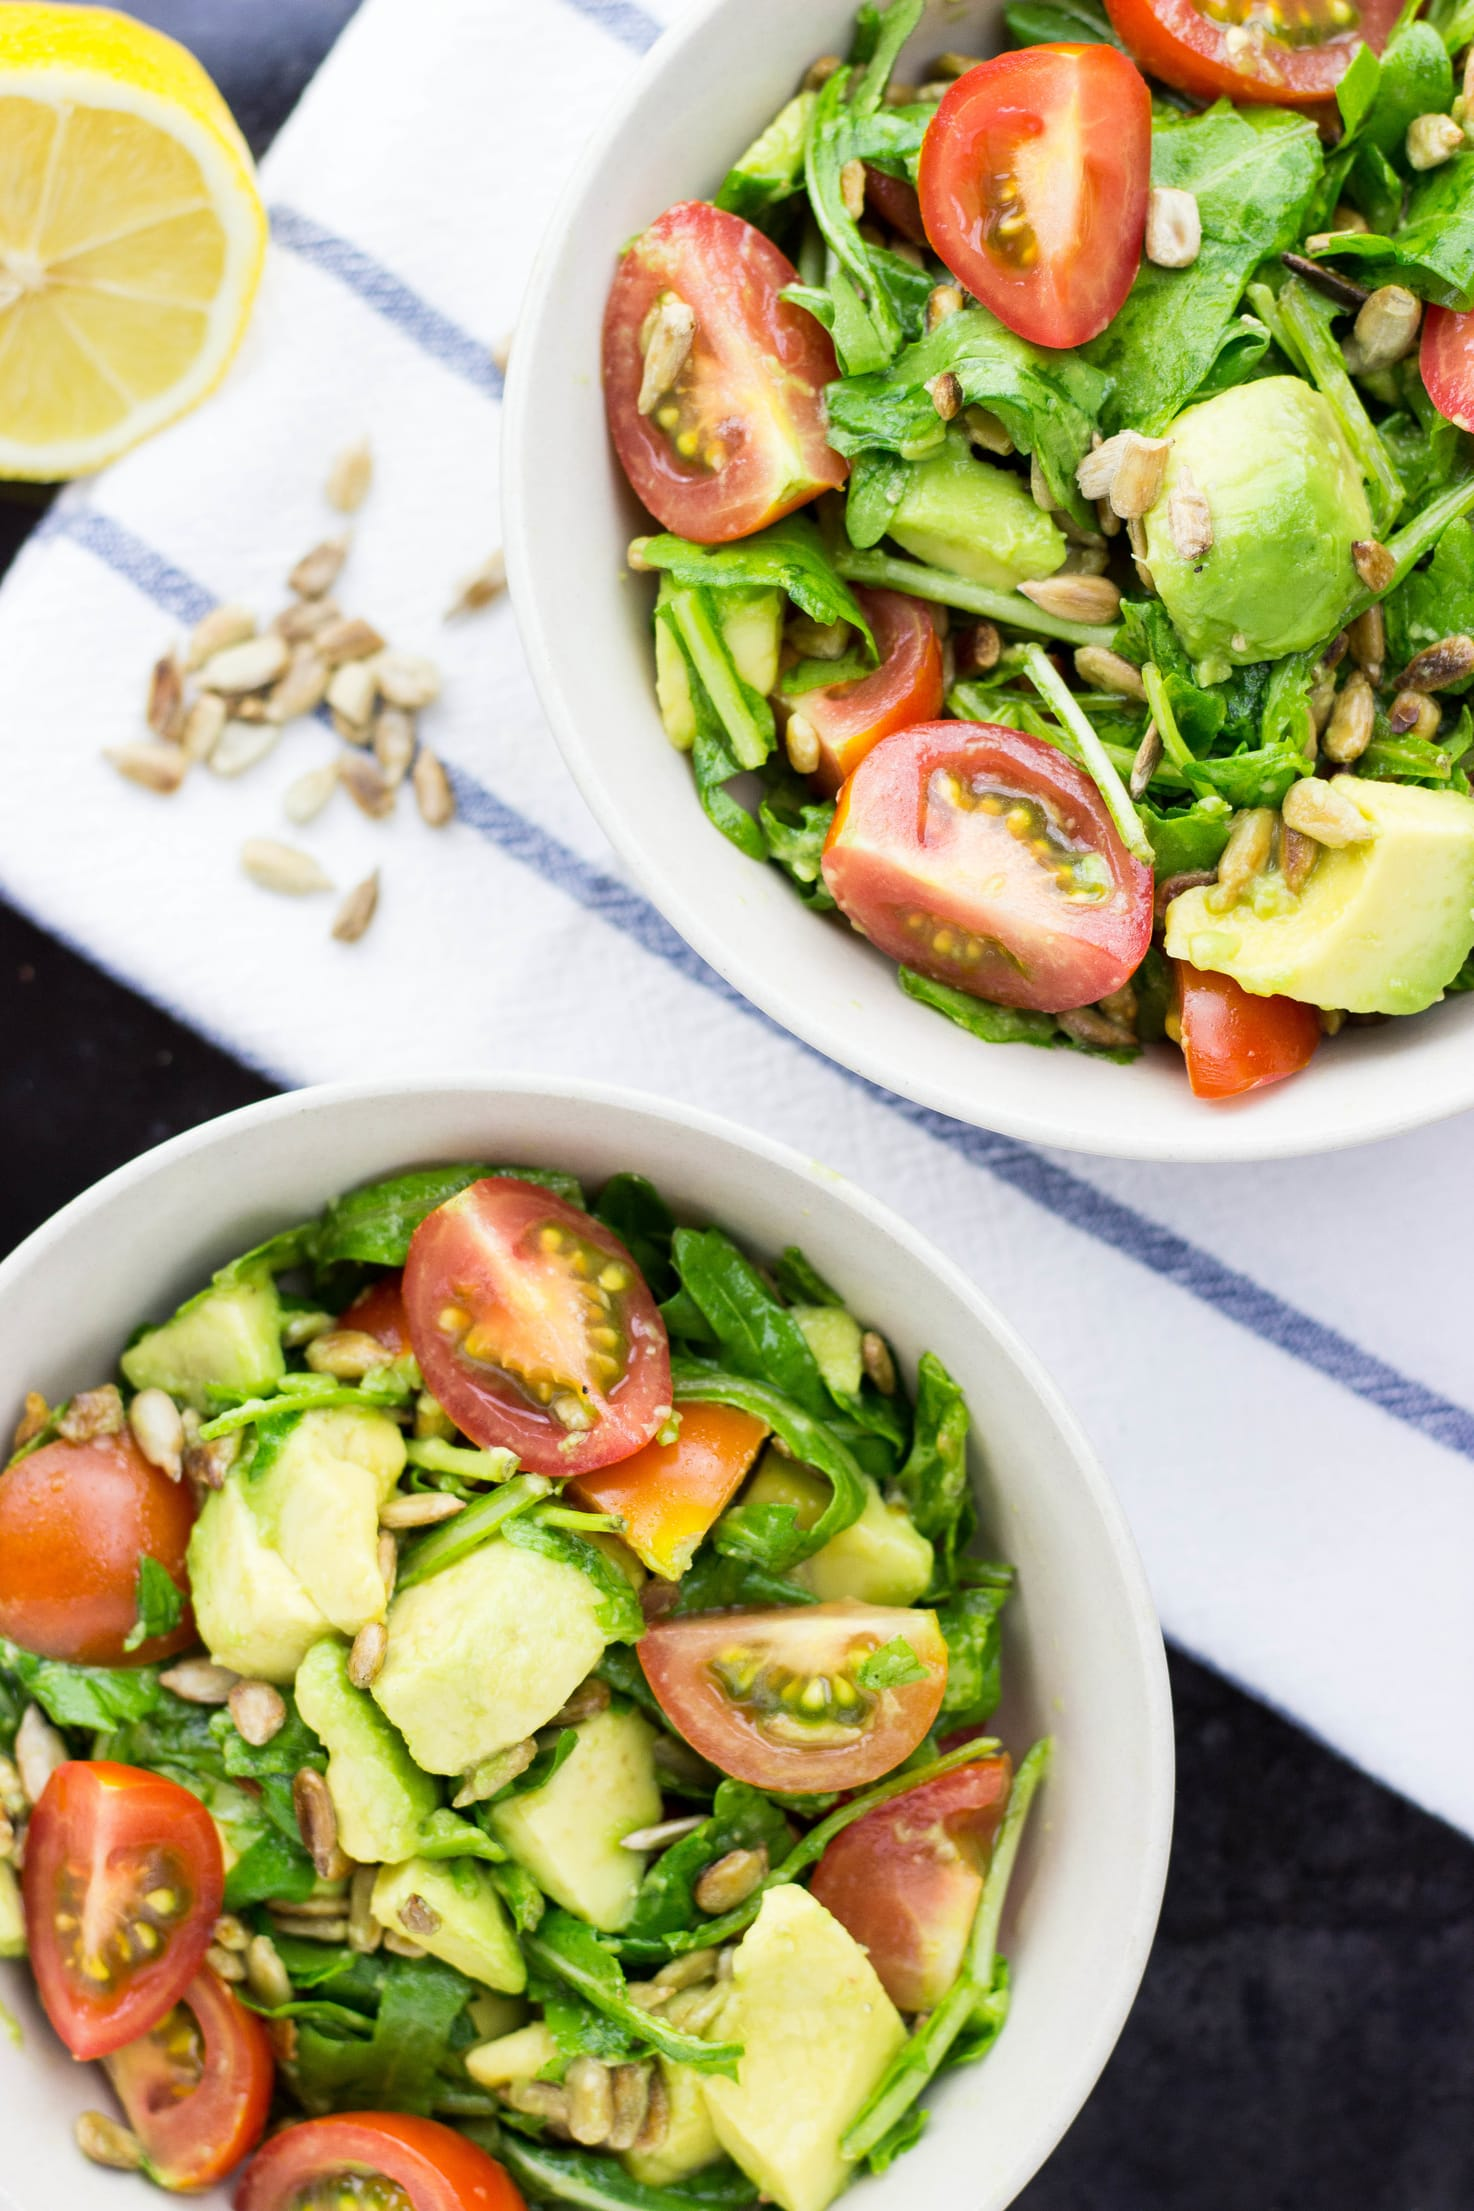 Two bowls of avocado and tomato salad on a blue and white table cloth, with sunflower seeds and lemon scattered around | Hurry The Food Up